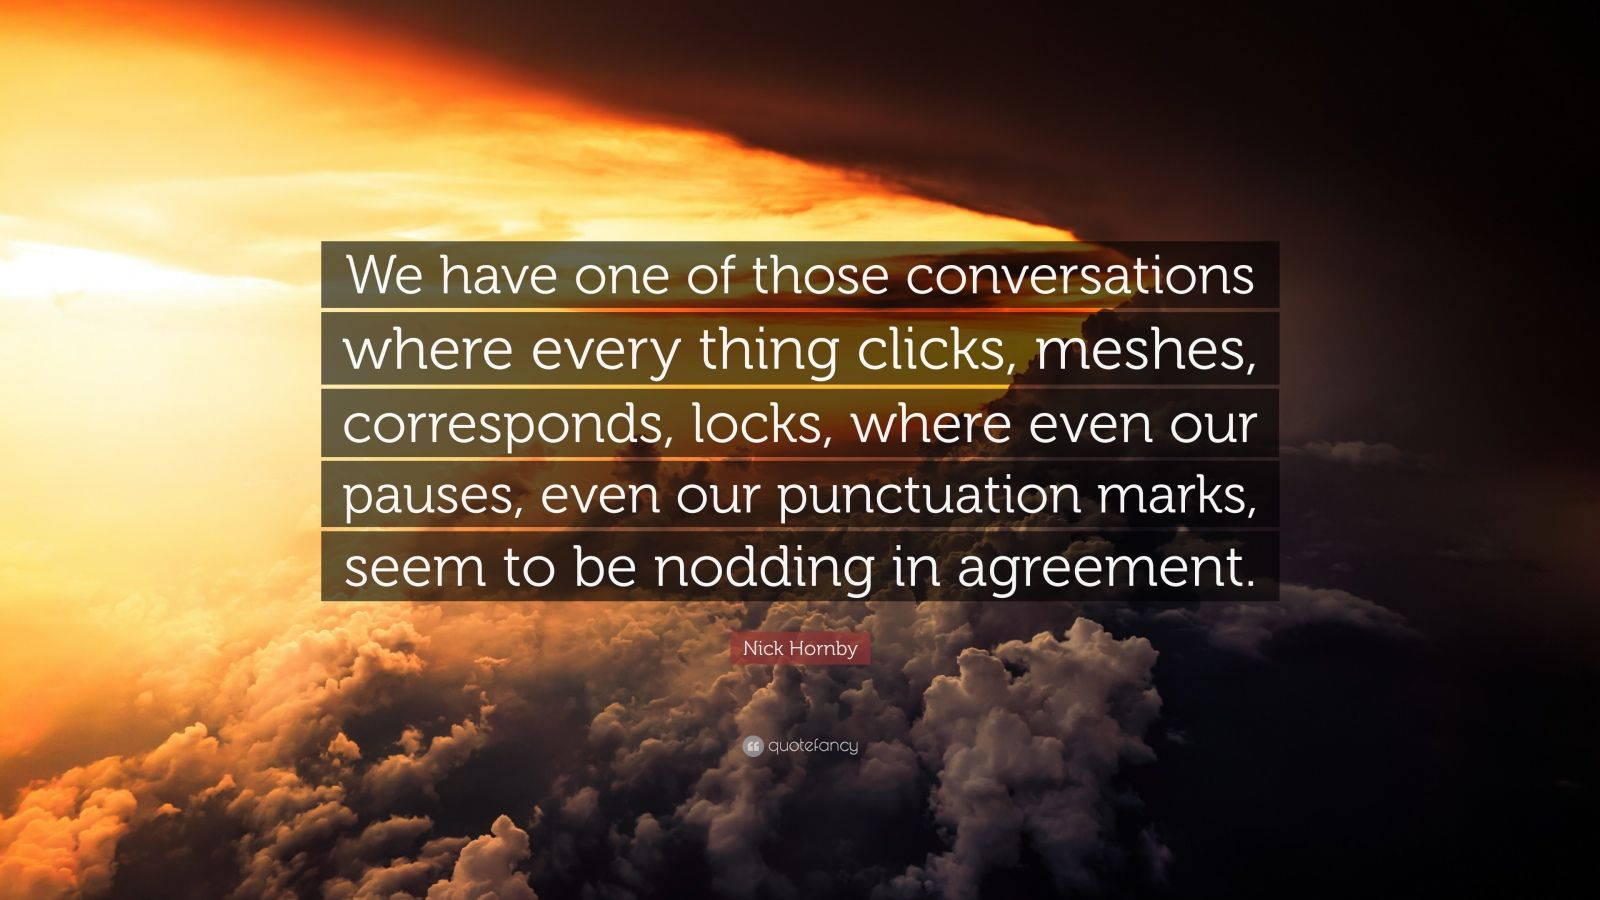 """Nick Hornby Quote: """"We have one of those conversations where every thing clicks, meshes, corresponds, locks, where even our pauses, even our punctuation marks, seem to be nodding in agreement."""""""